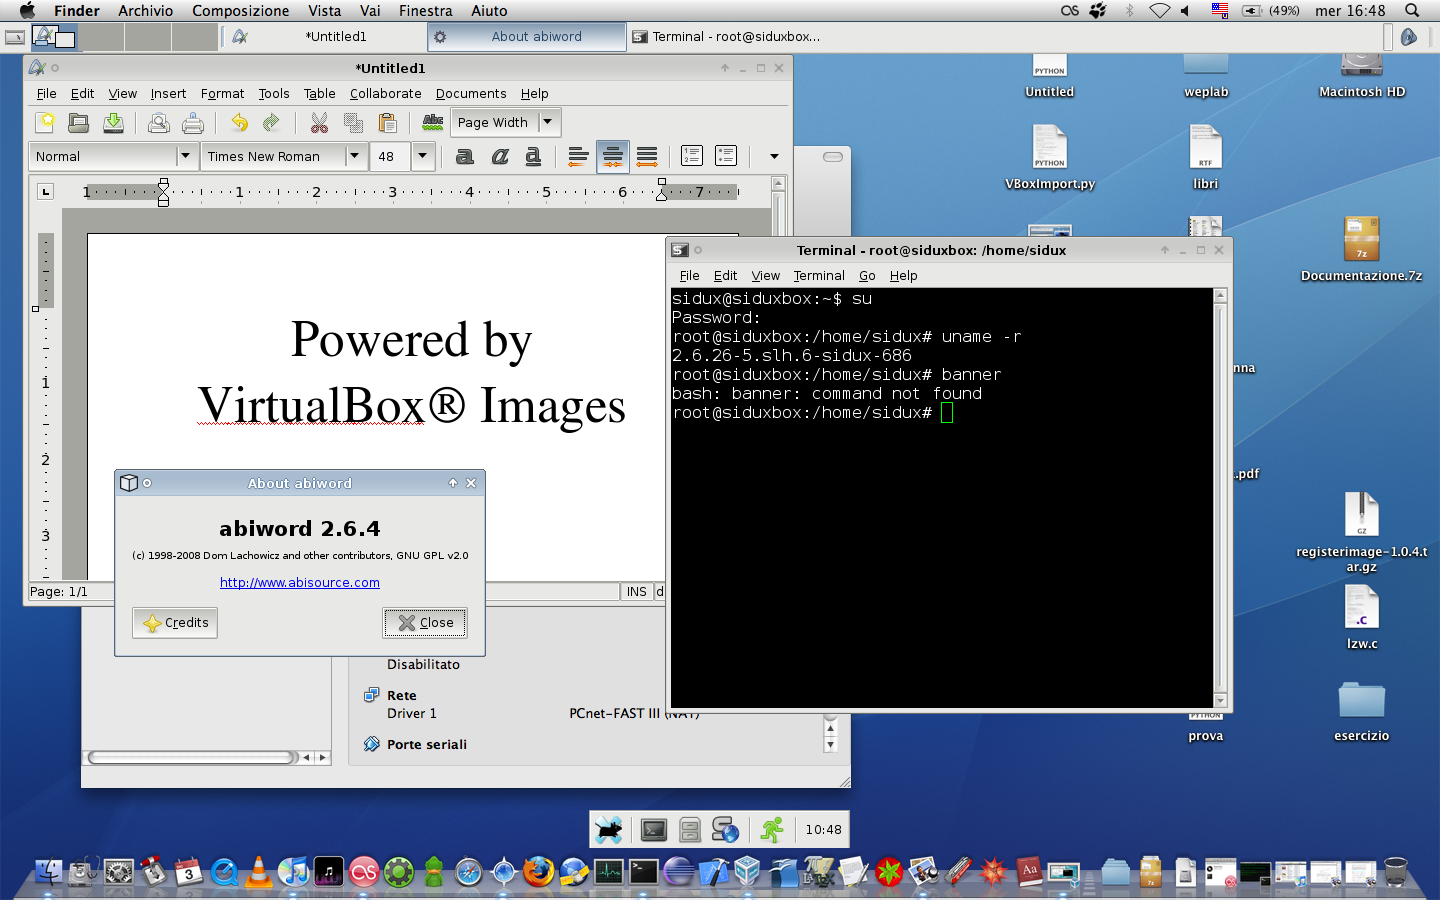 Screenshots | VirtualBoxes - Free VirtualBox® Images